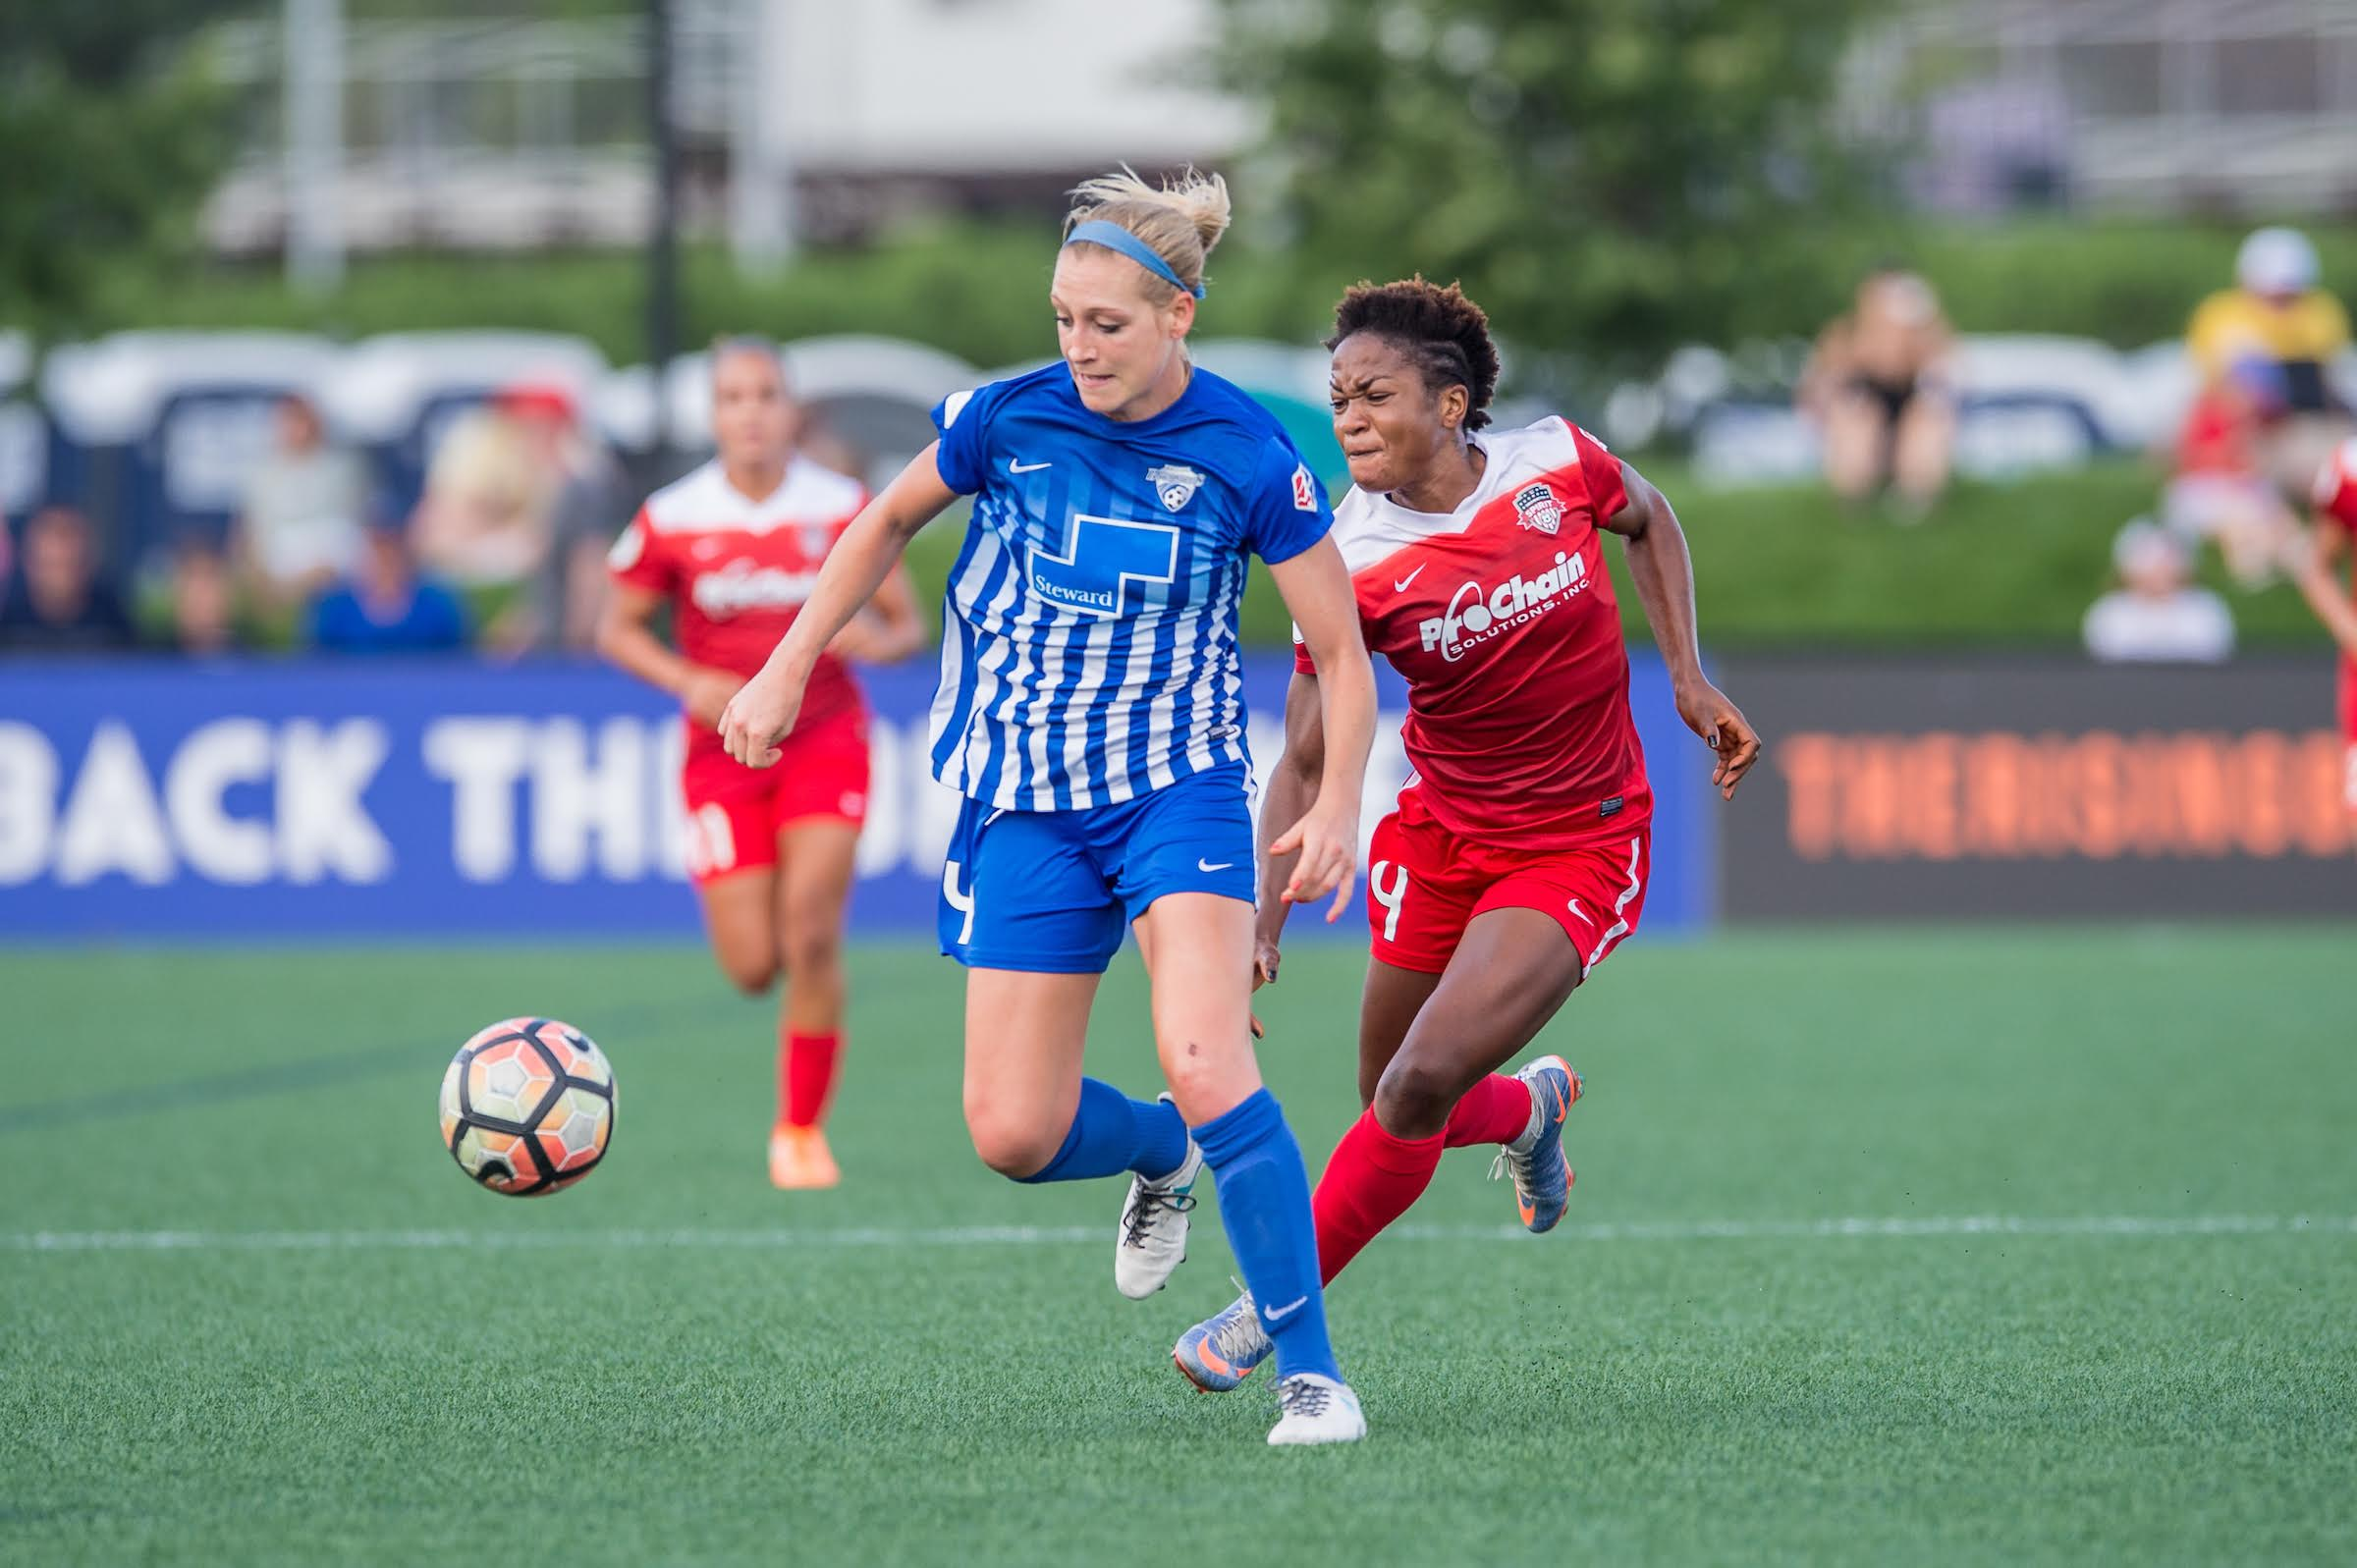 Osyter made her debut for the USWNT on April 6, 2017. In addition to her three seasons in the NWSL, she also spent in the W-League in Australia with the Newcastle Jets during the NWSL off season. (Credit: ISI Photos/Mike Gridley)